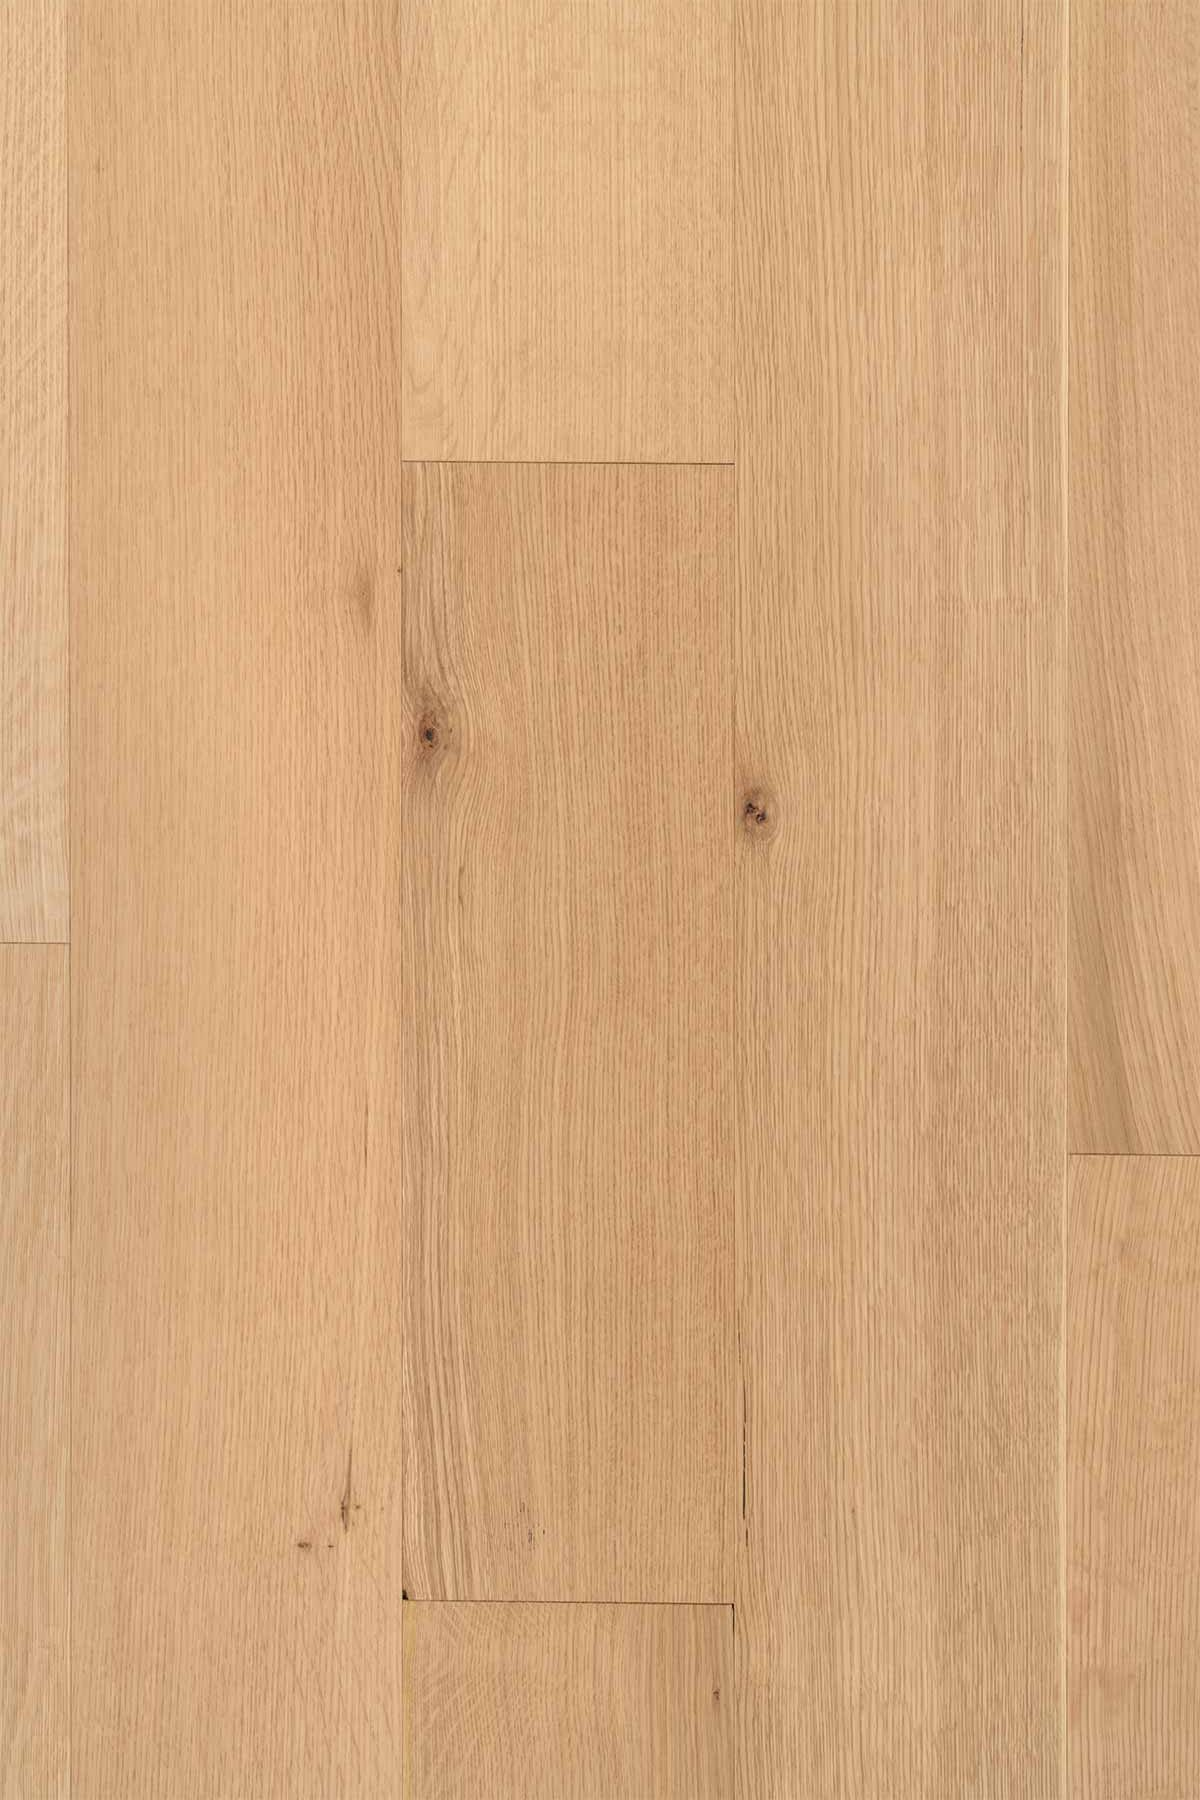 oak from is a has the plain mix for unique pattern floors we get cut logs quarter flooring and allowing grain pin sawn live natural white of rift